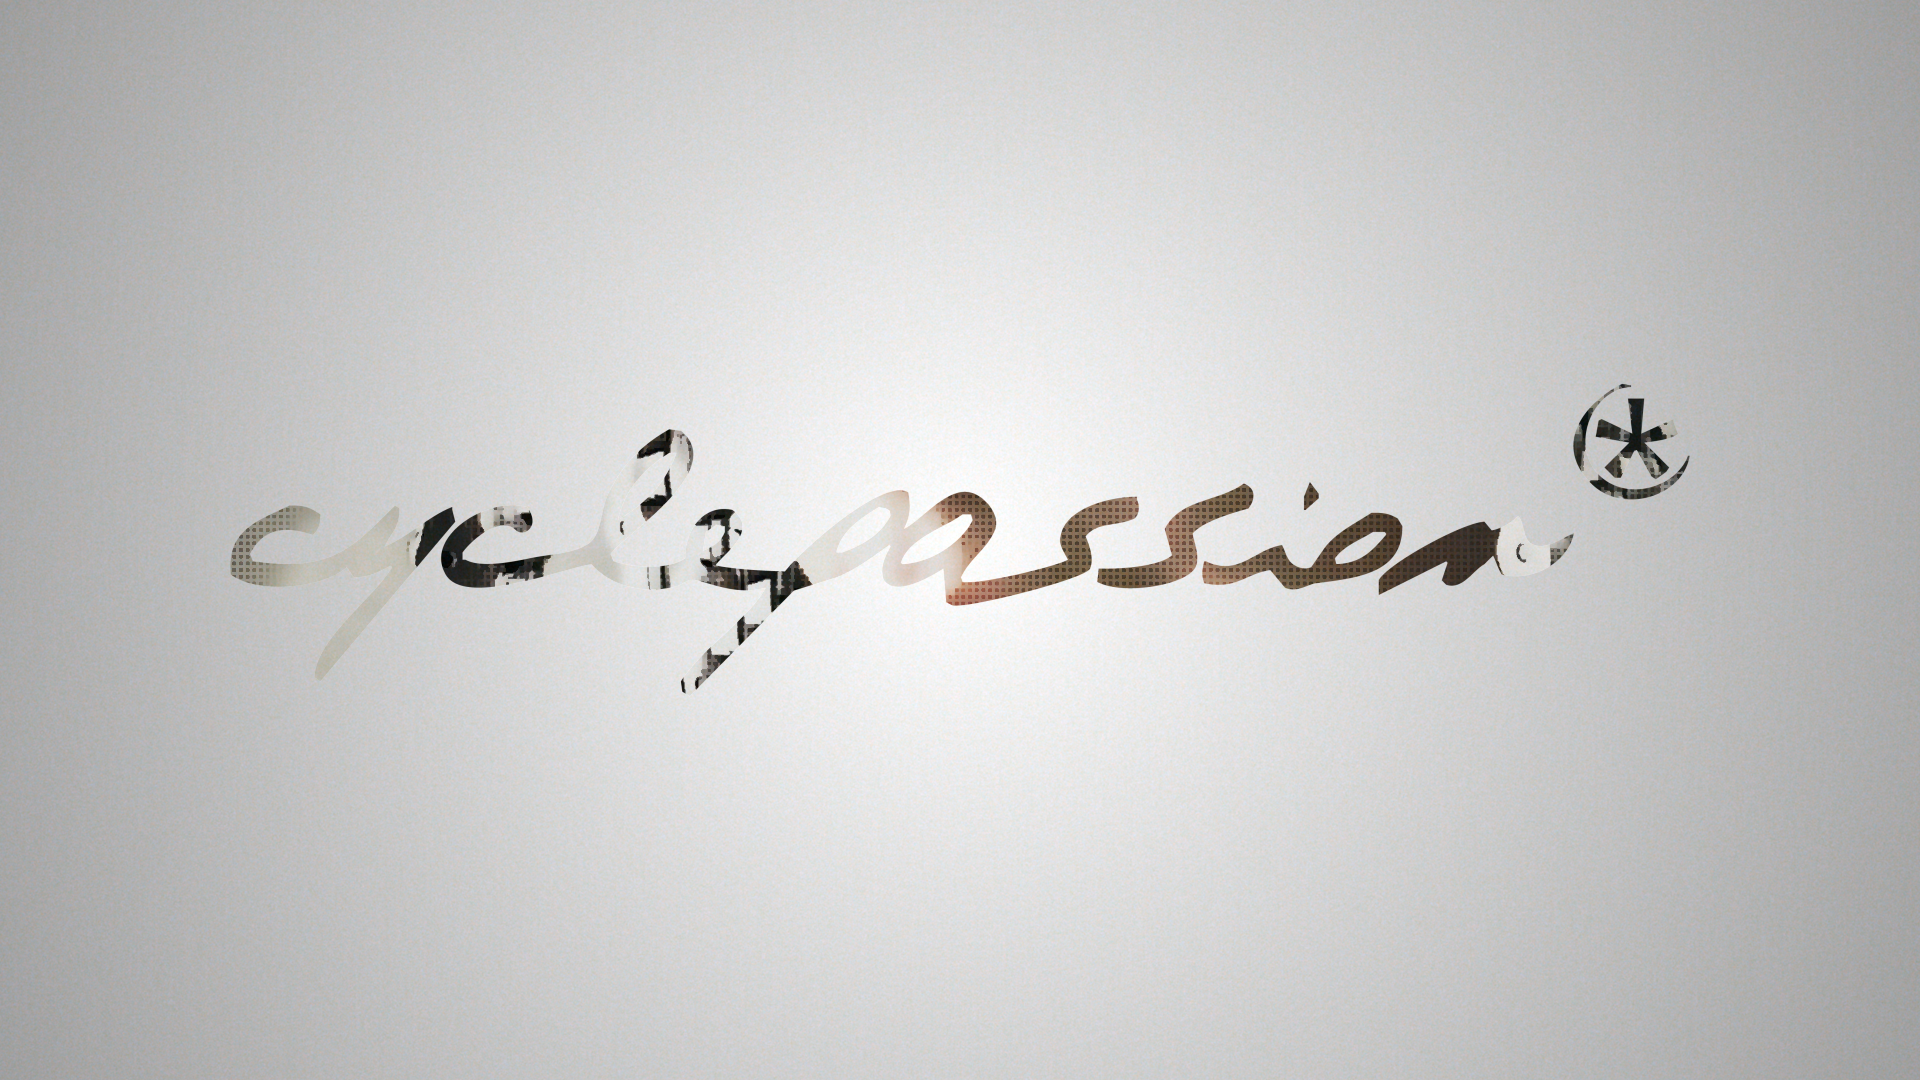 Cyclepassion_1920x1080_ID_2015 (0.00.07.24).png